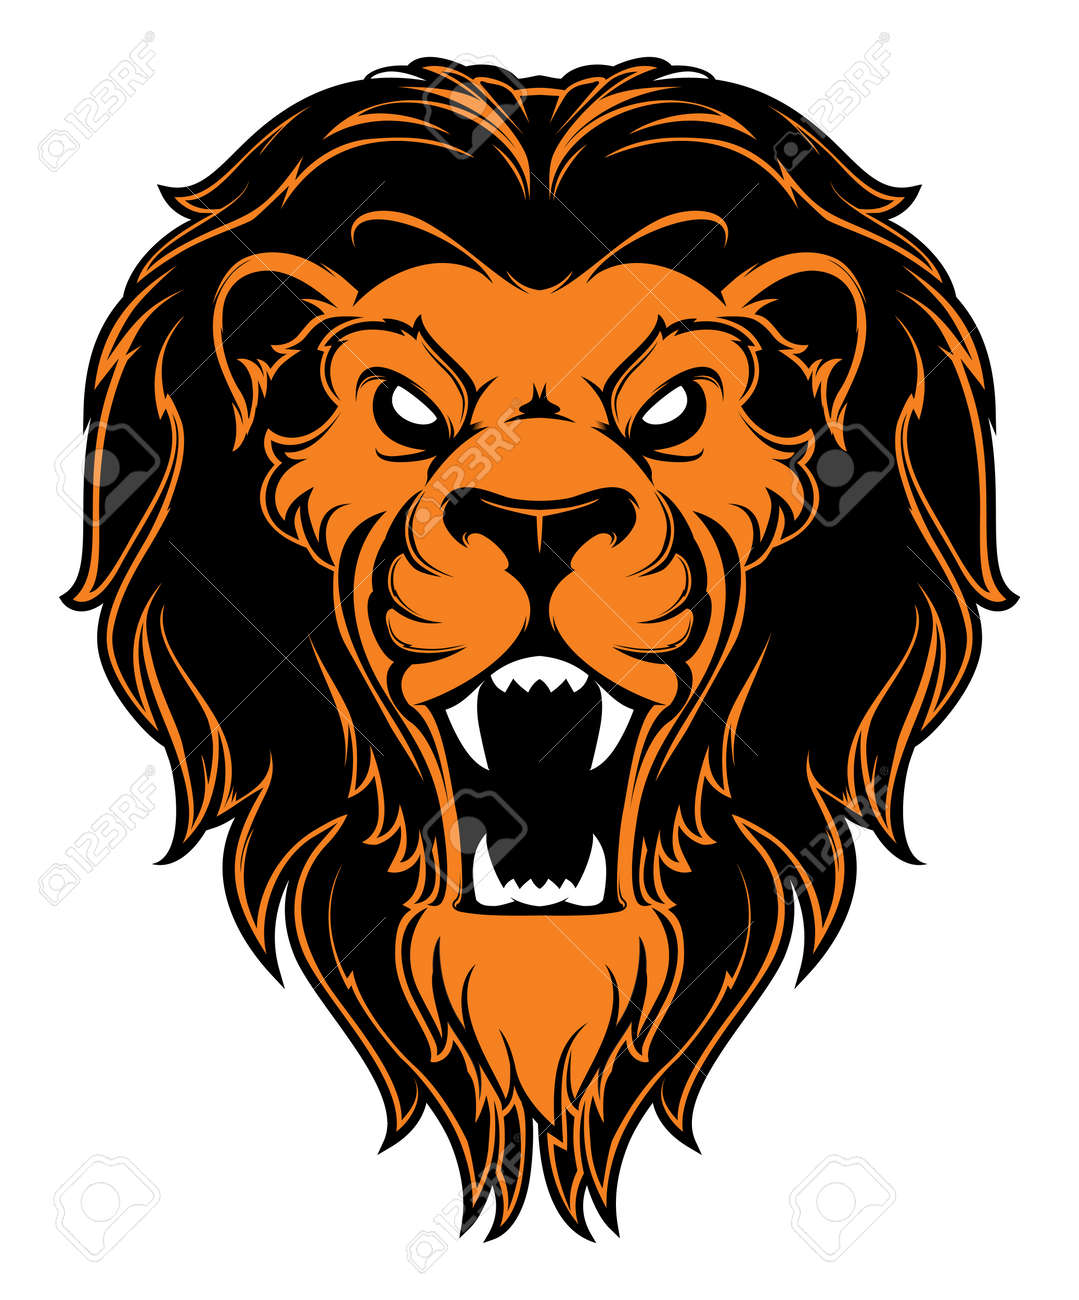 Roaring lion head mascot. Label. Isolated on white background - 133205666